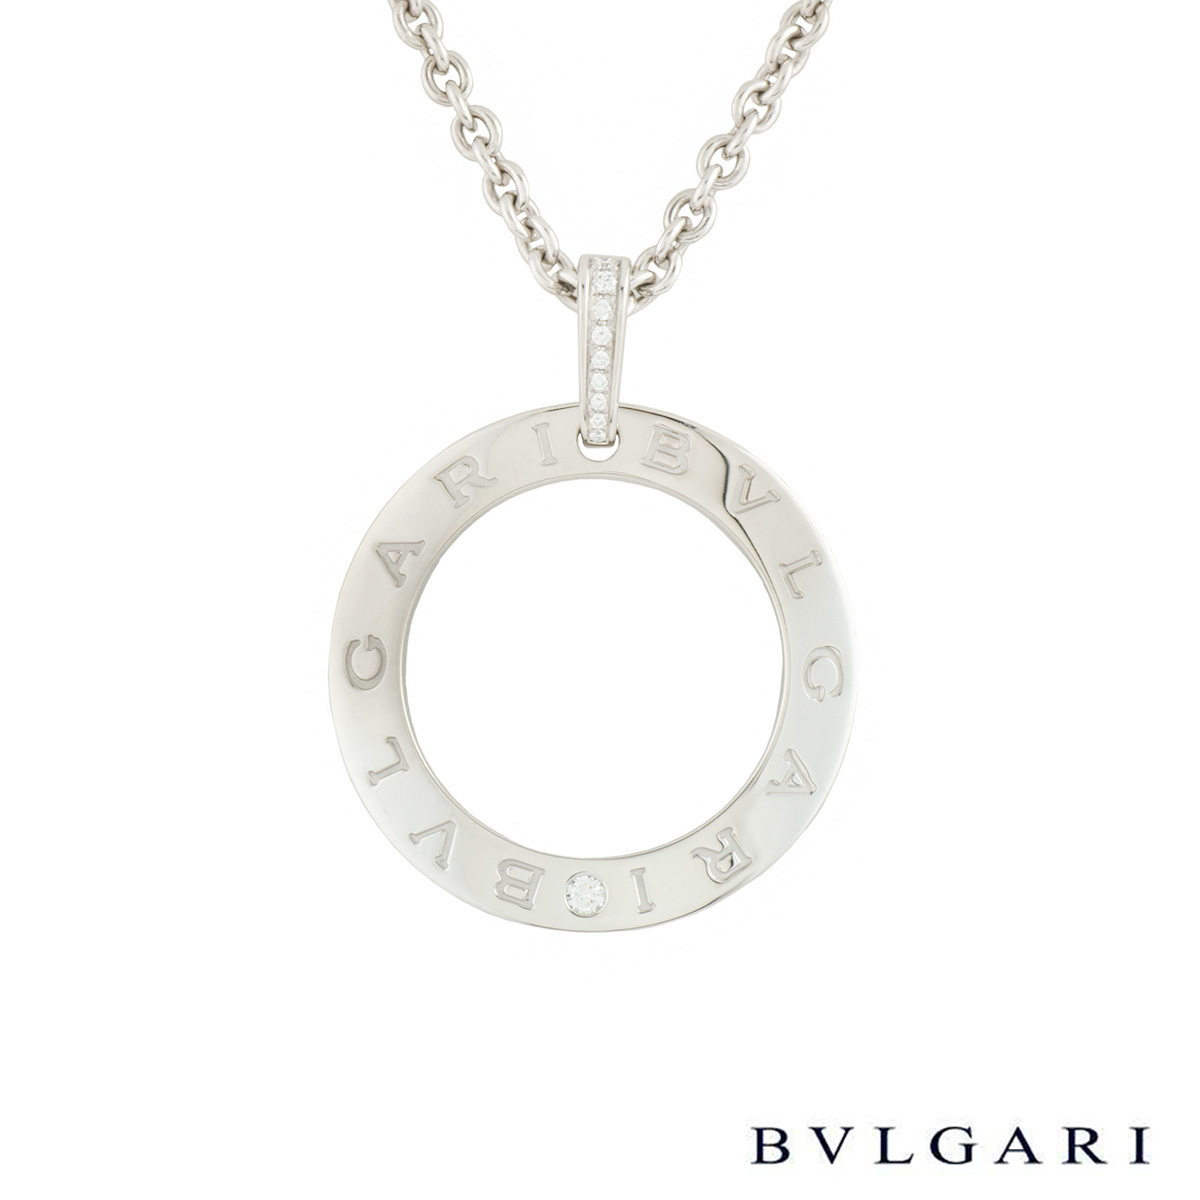 Bvlgari Bvlgari White Gold Diamond Necklace